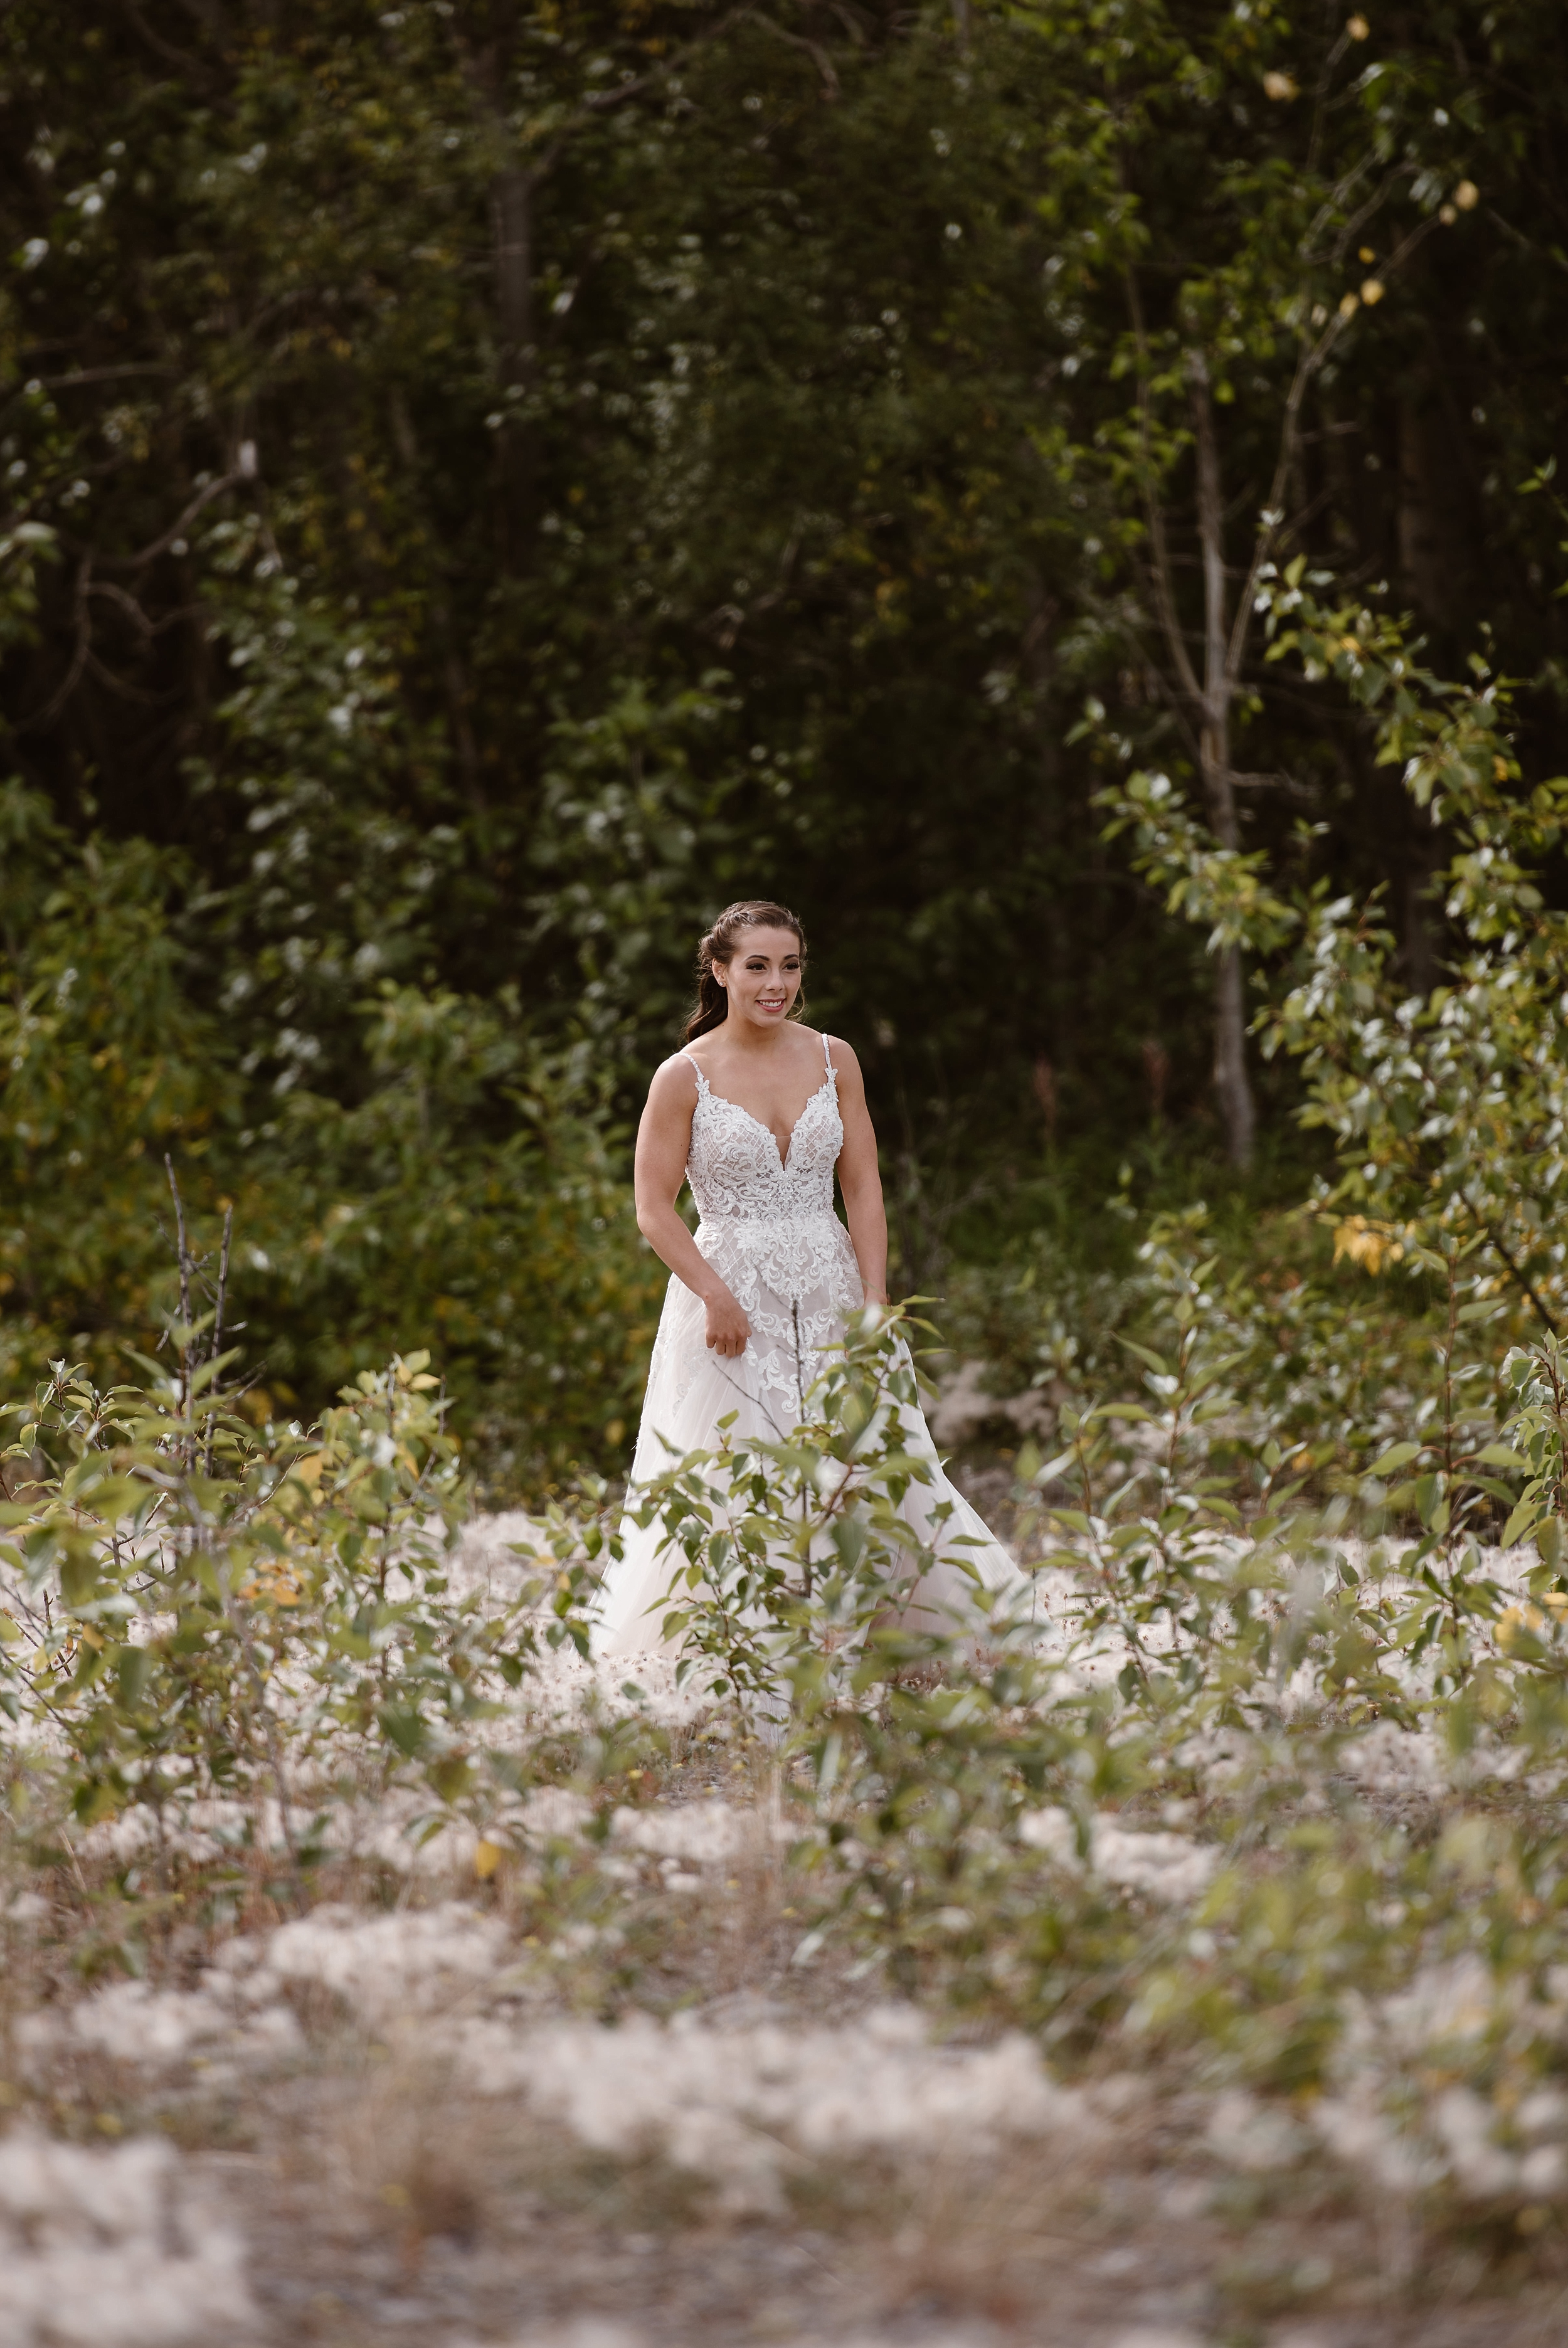 Among lush plants, ferns, and flowers, the bride looks into the distance. Outfitted in her wedding dress in this elopement photo, captured by alaska wedding photographer Adventure Instead, the bride stands out beautifully in white among the green plants surrounding her.